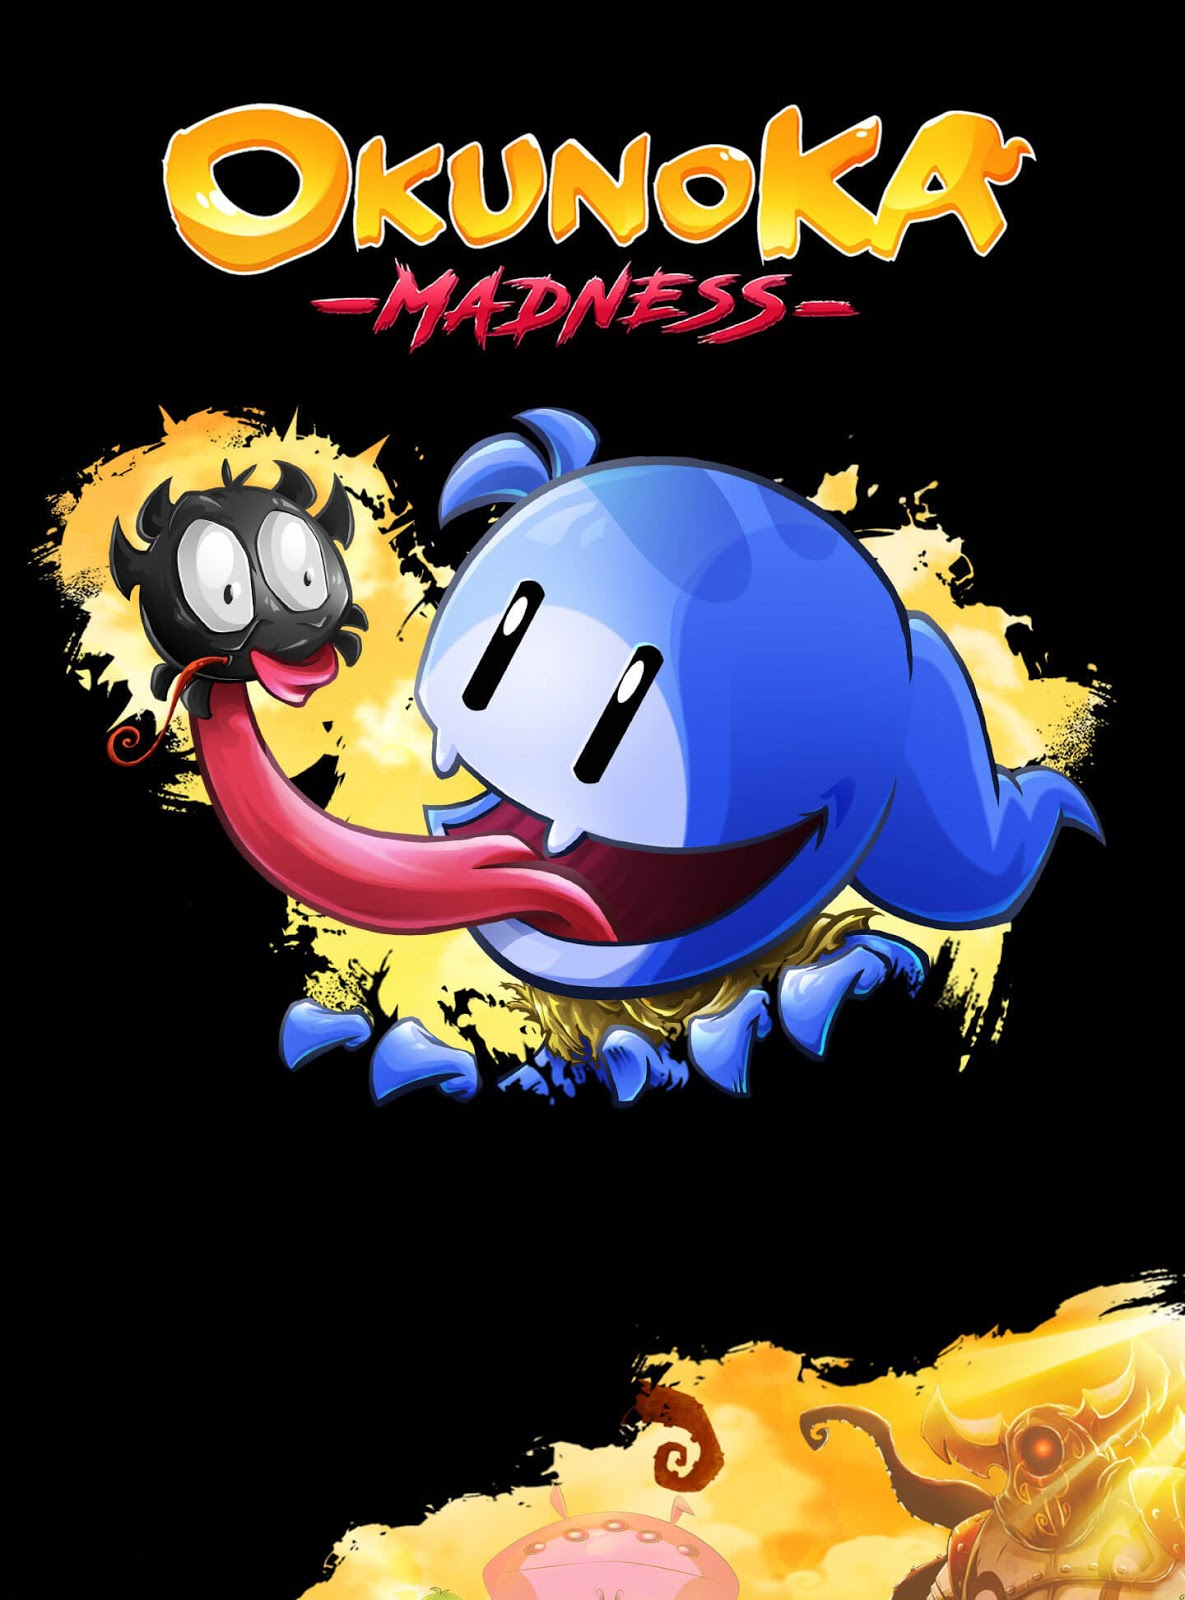 Okunoka Madness game, Okunoka Madness game view, Okunoka Madness game image, Okunoka Madness game, Download the game's game in 2020 for your computer, Download Okunoka Madness for free  , Commercial OkunoKA Madness